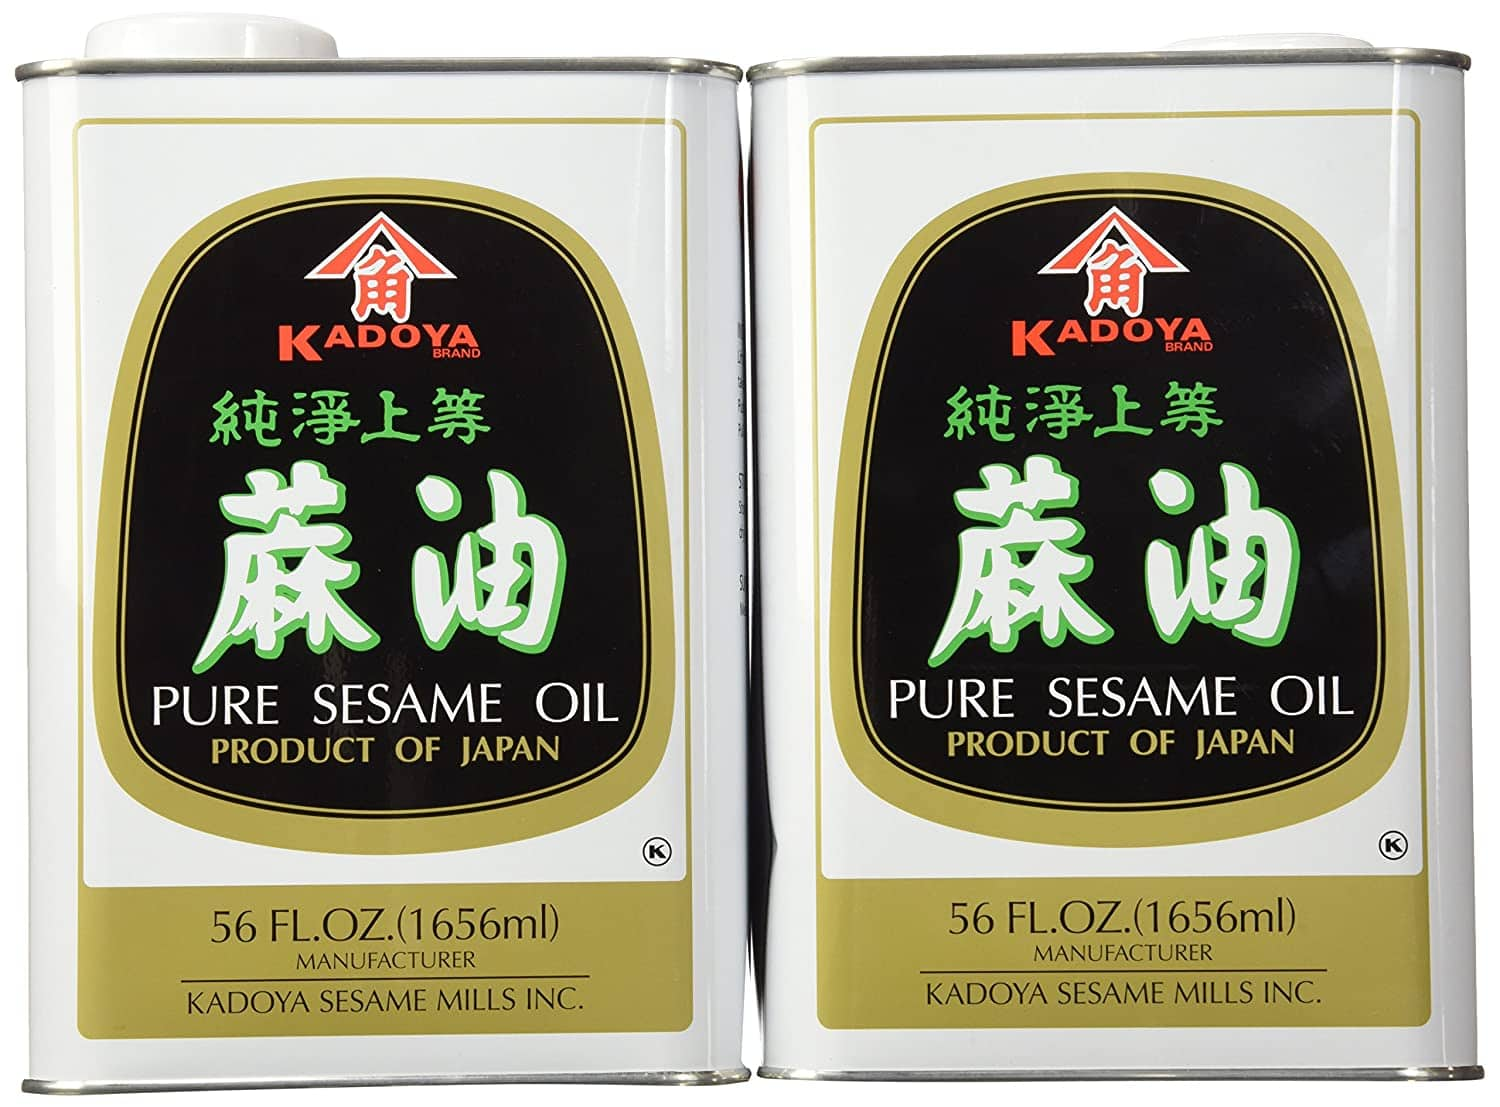 Kadoya Pure Sesame Oil, 56-Ounce Cans (Pack of 2) - $20.08 with Free Shipping with Amazon Prime